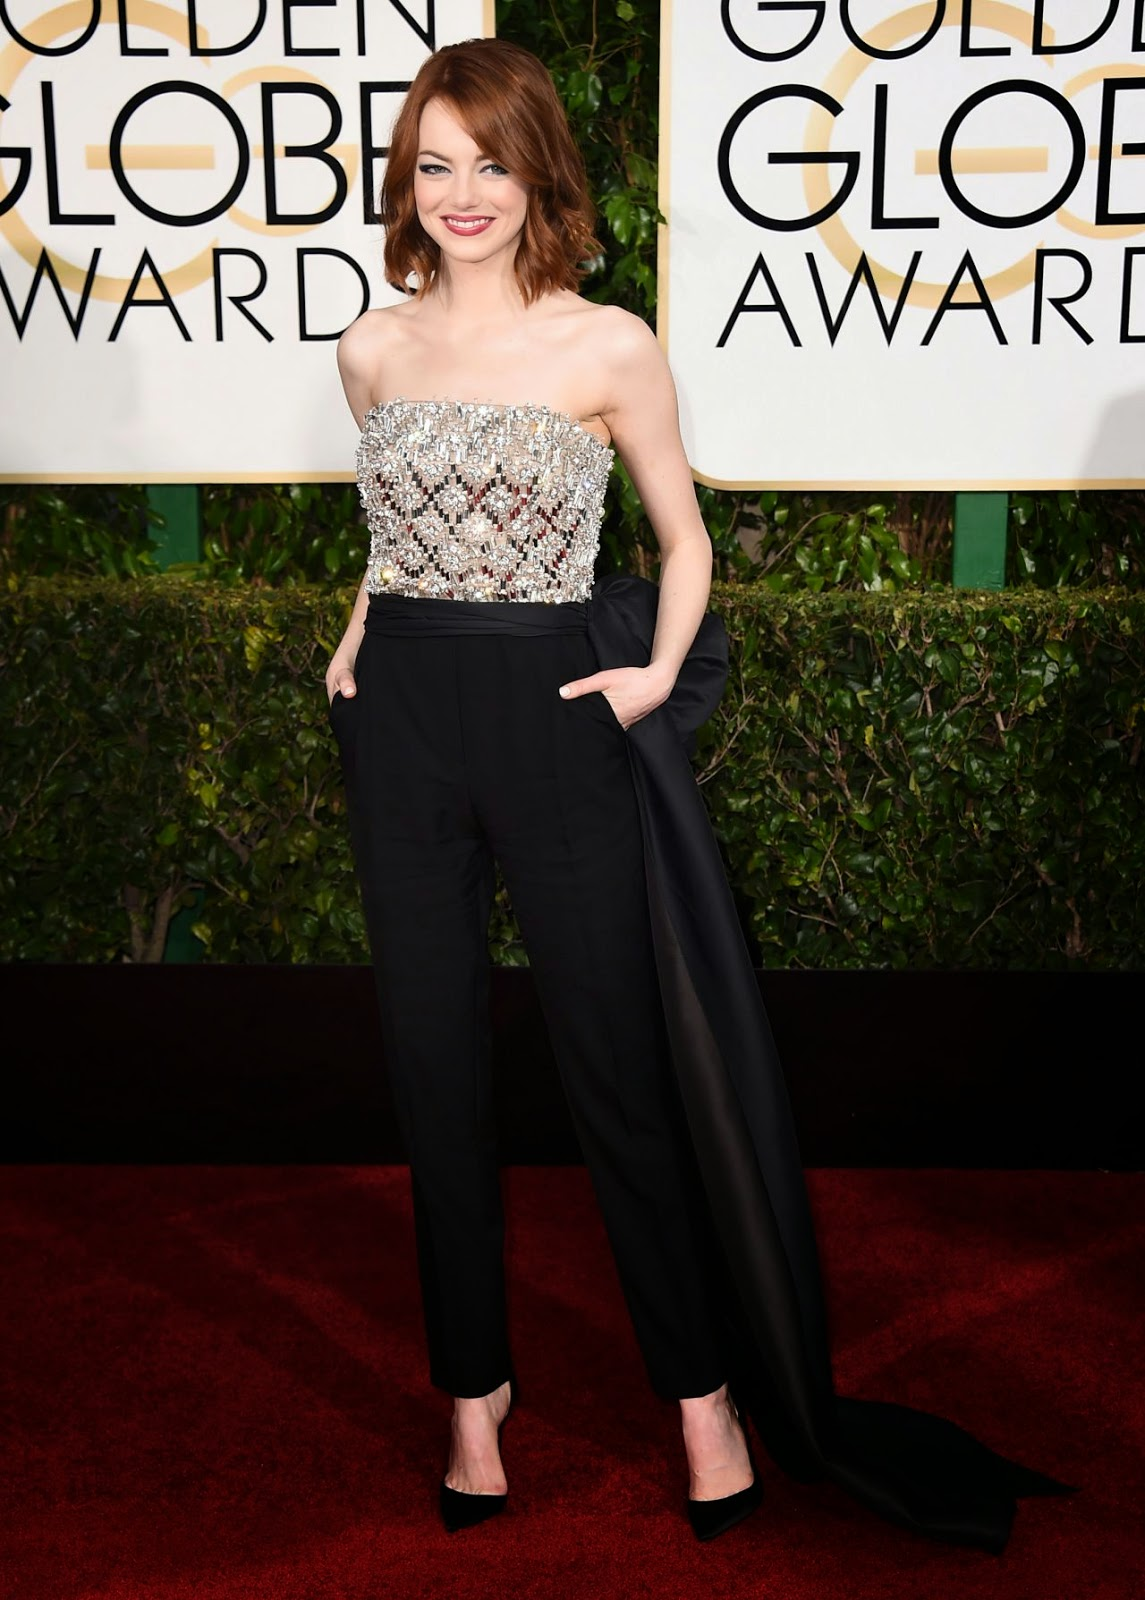 Emma Stone sizzles in a jumpsuit at the 2015 Golden Globe Awards